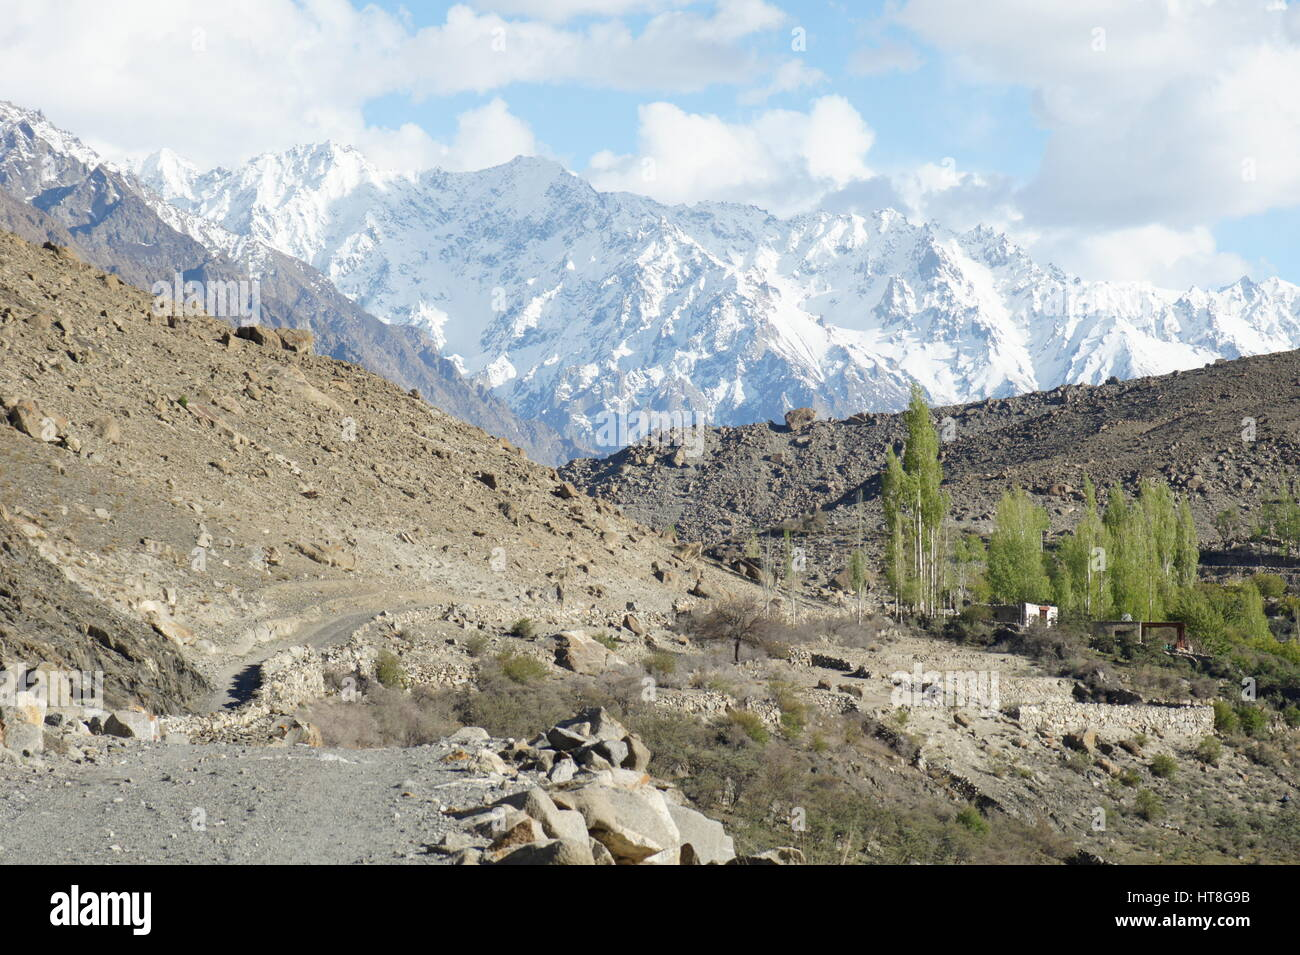 A view of Borit Lake and campsite surrounded by snow covered mountains in Pakistan. Stock Photo